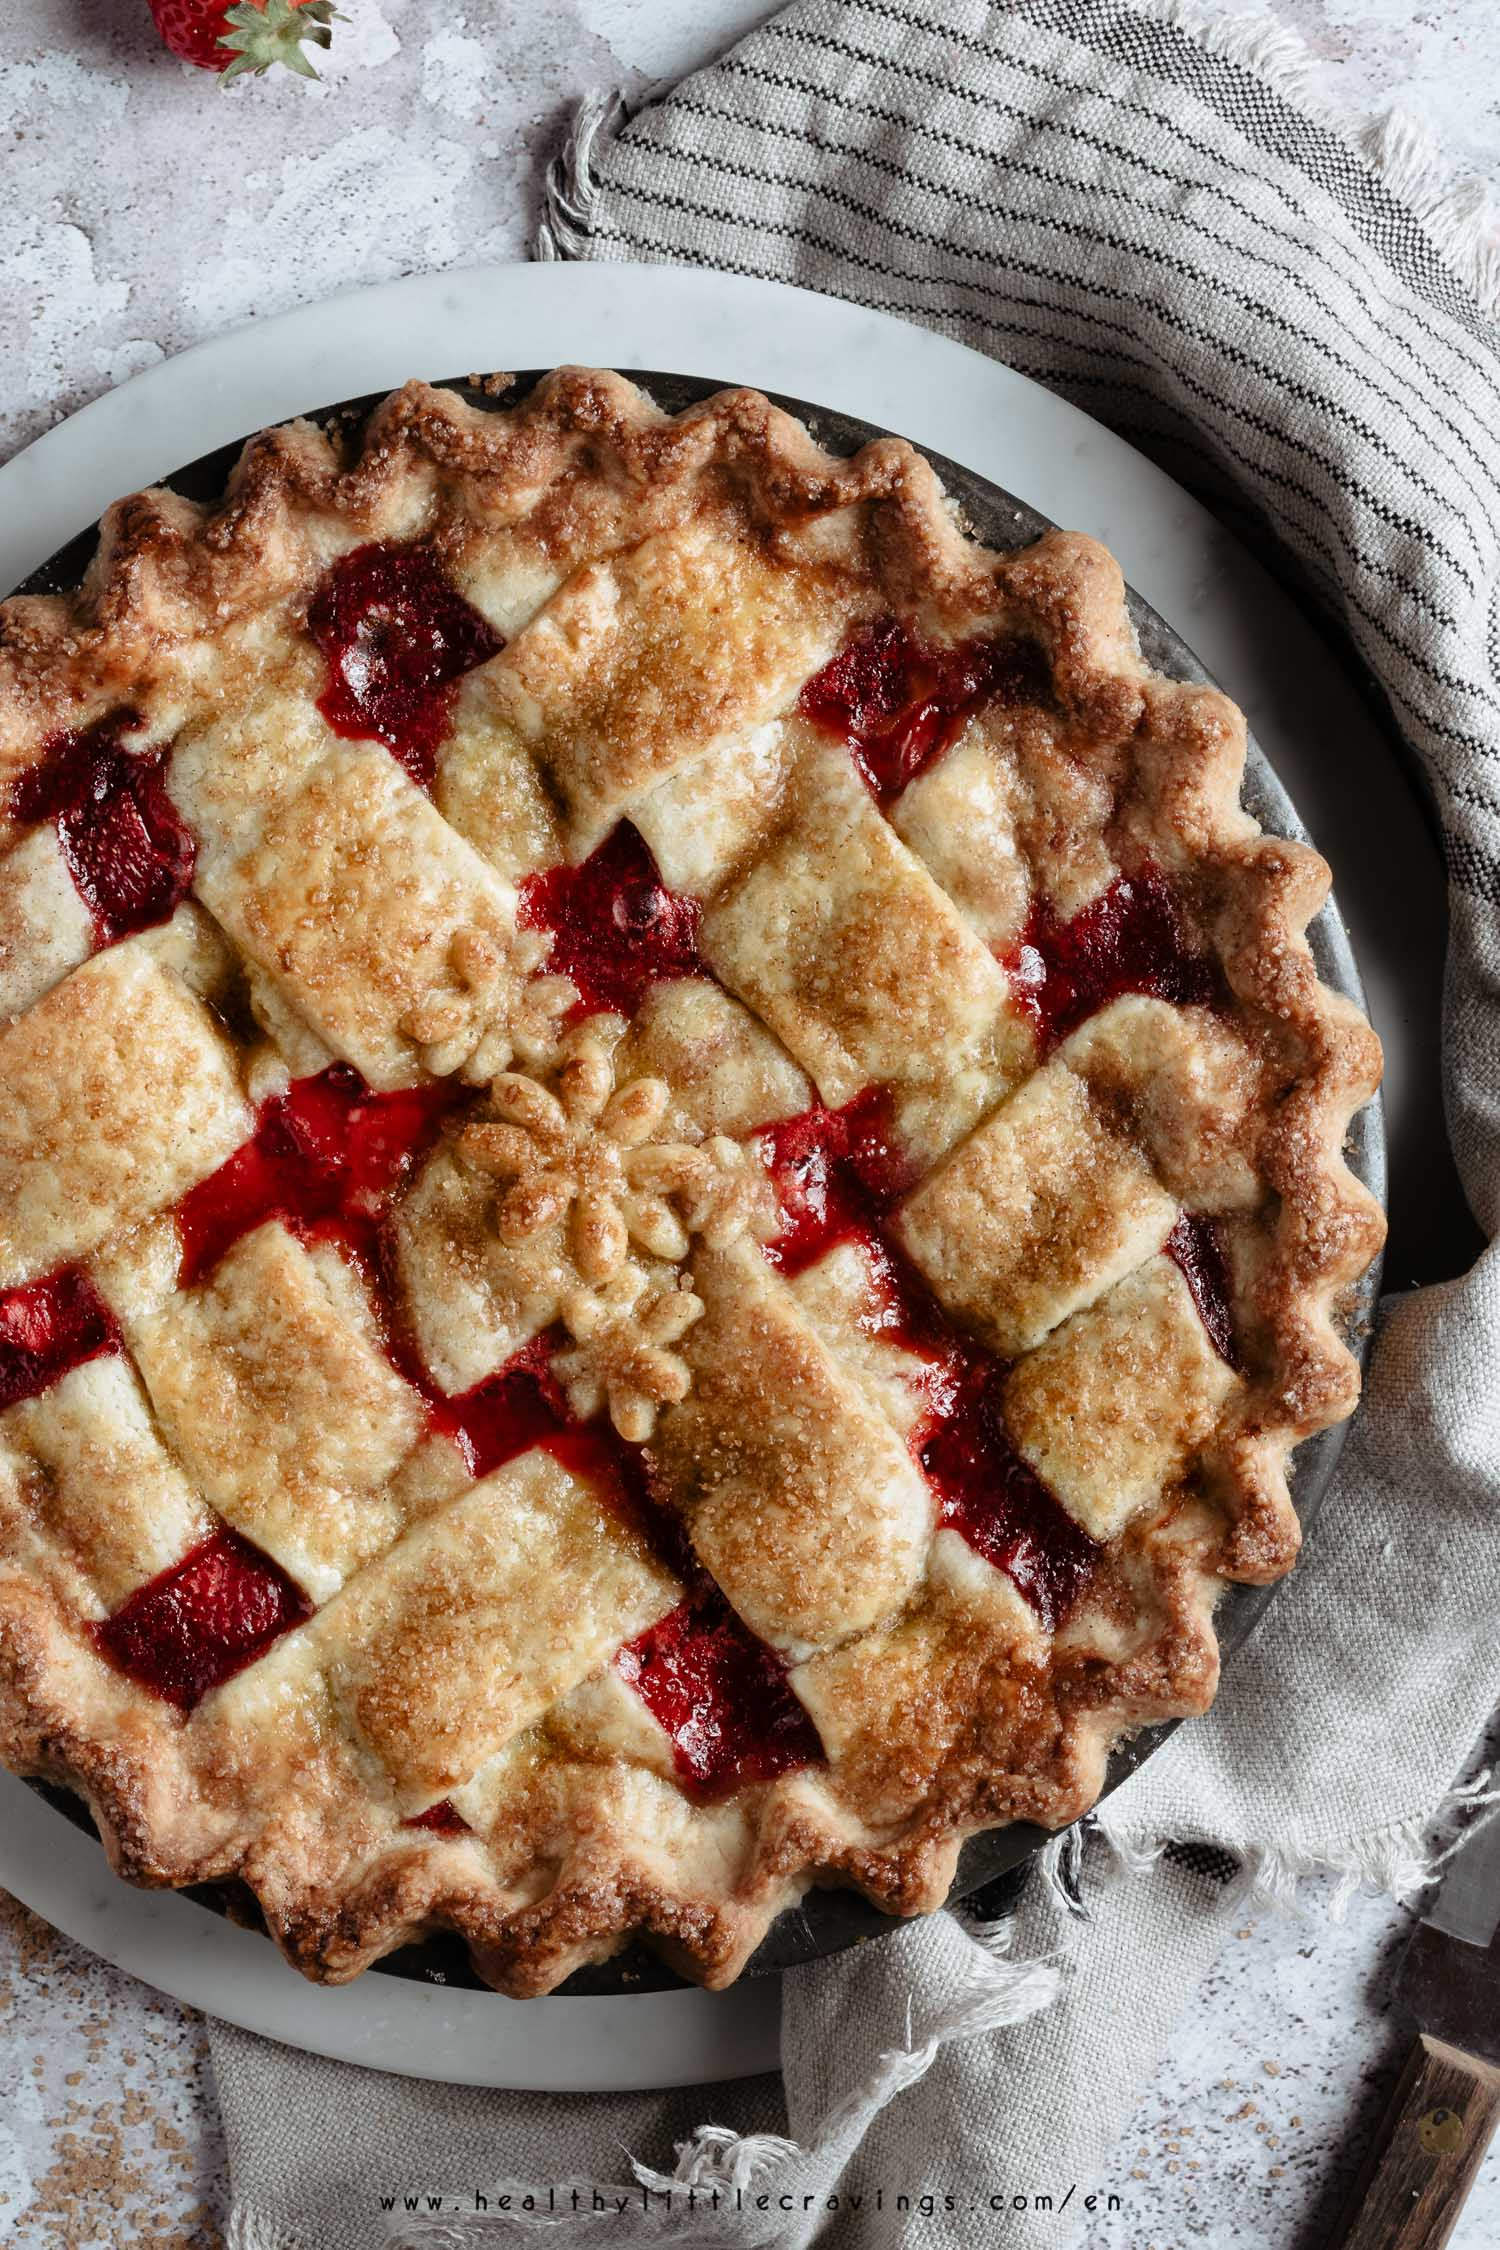 Step-by-step guide on how to make a strawberry pie